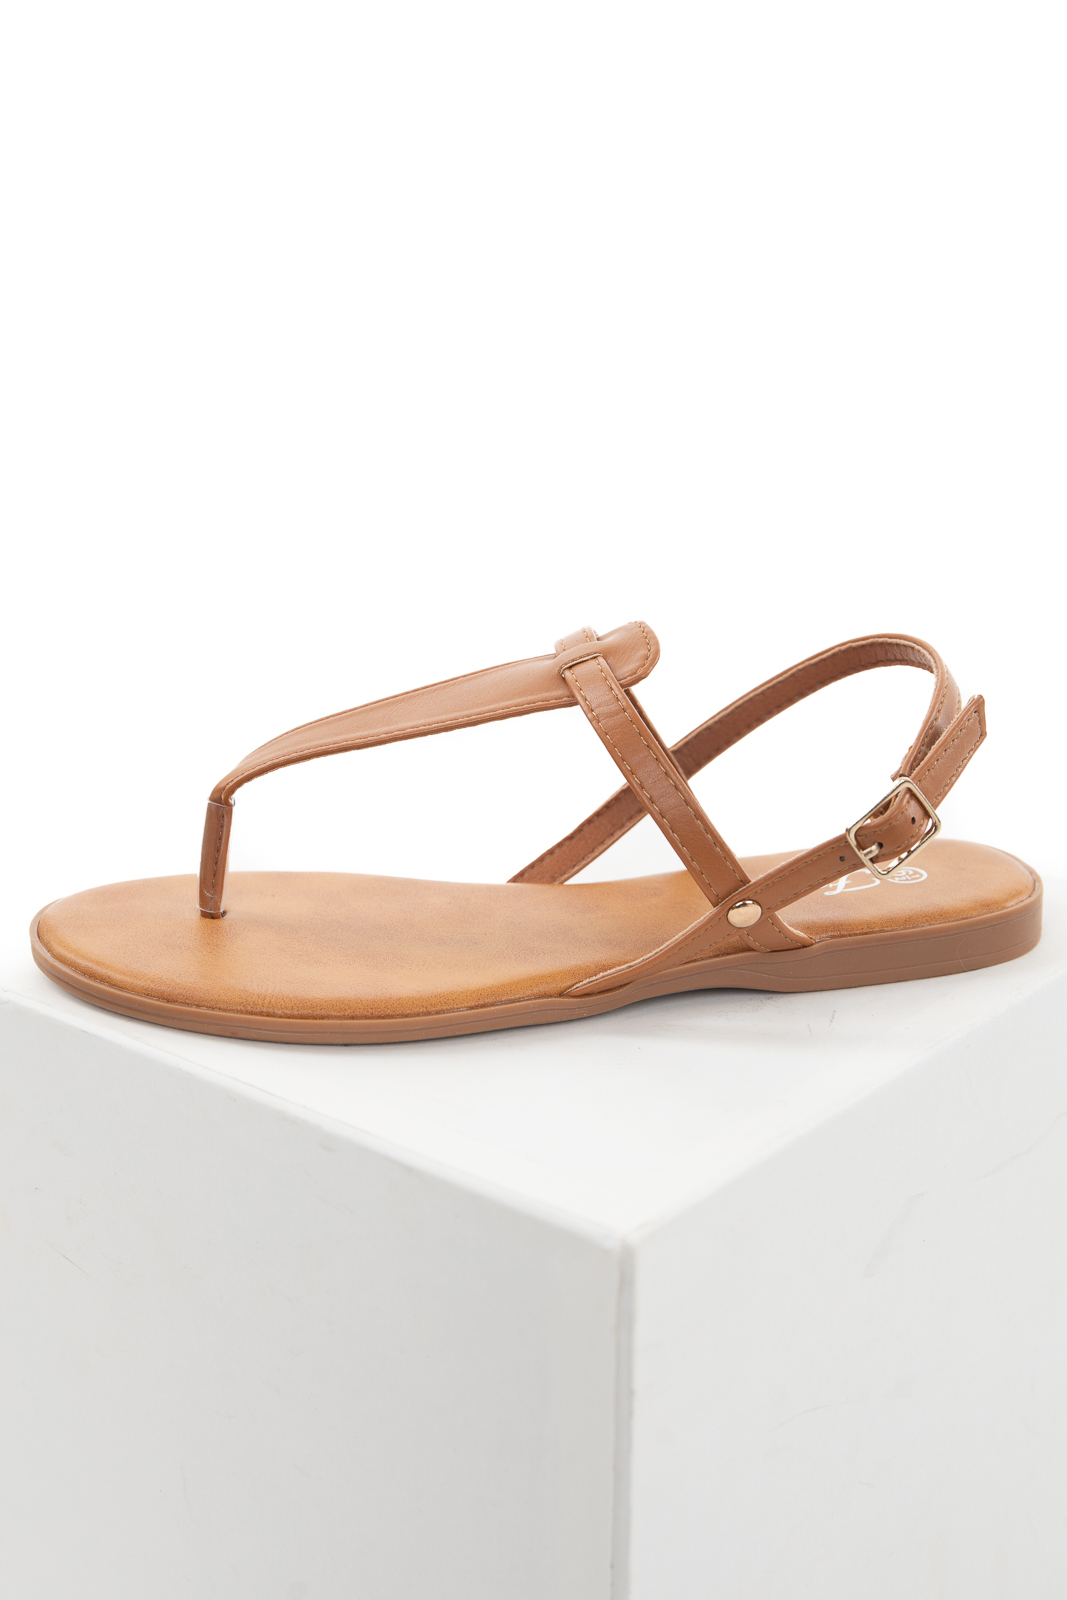 Caramel Flat Strappy Thong Sandals with Buckle Closure